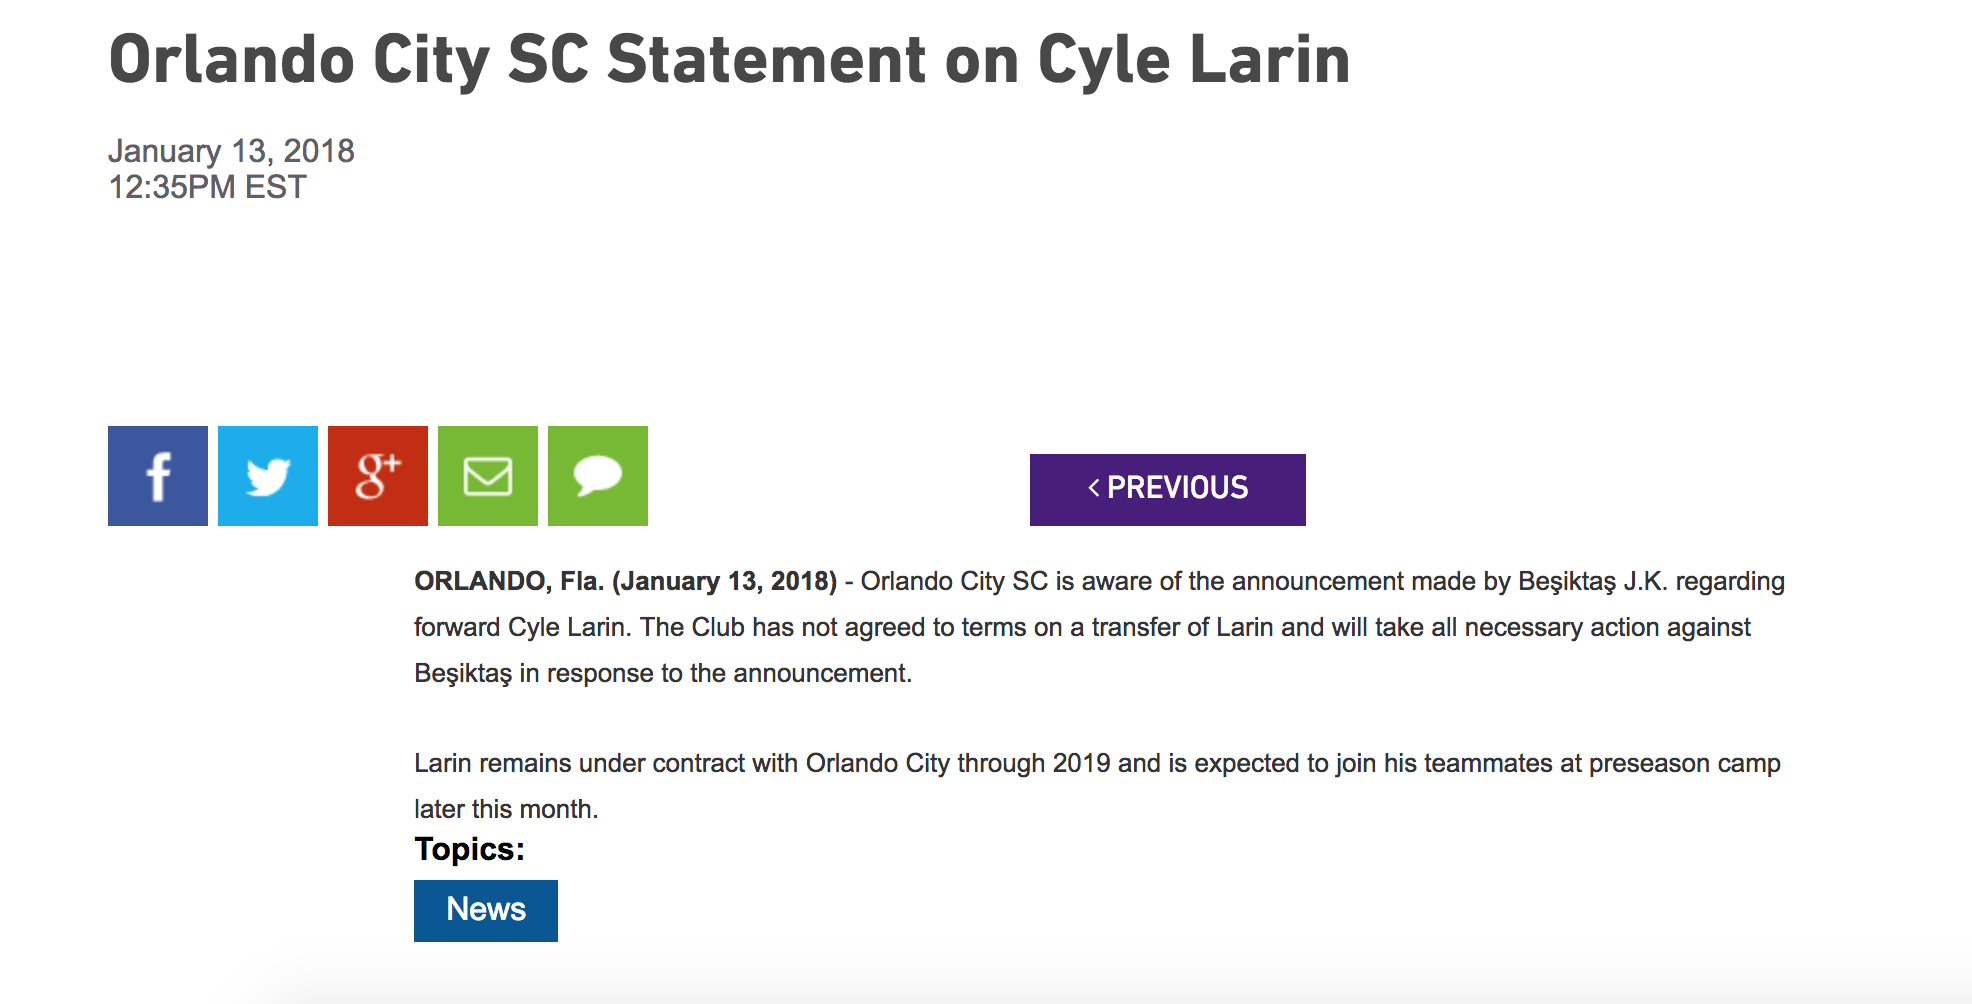 Orlando City statement on Cyle Larin